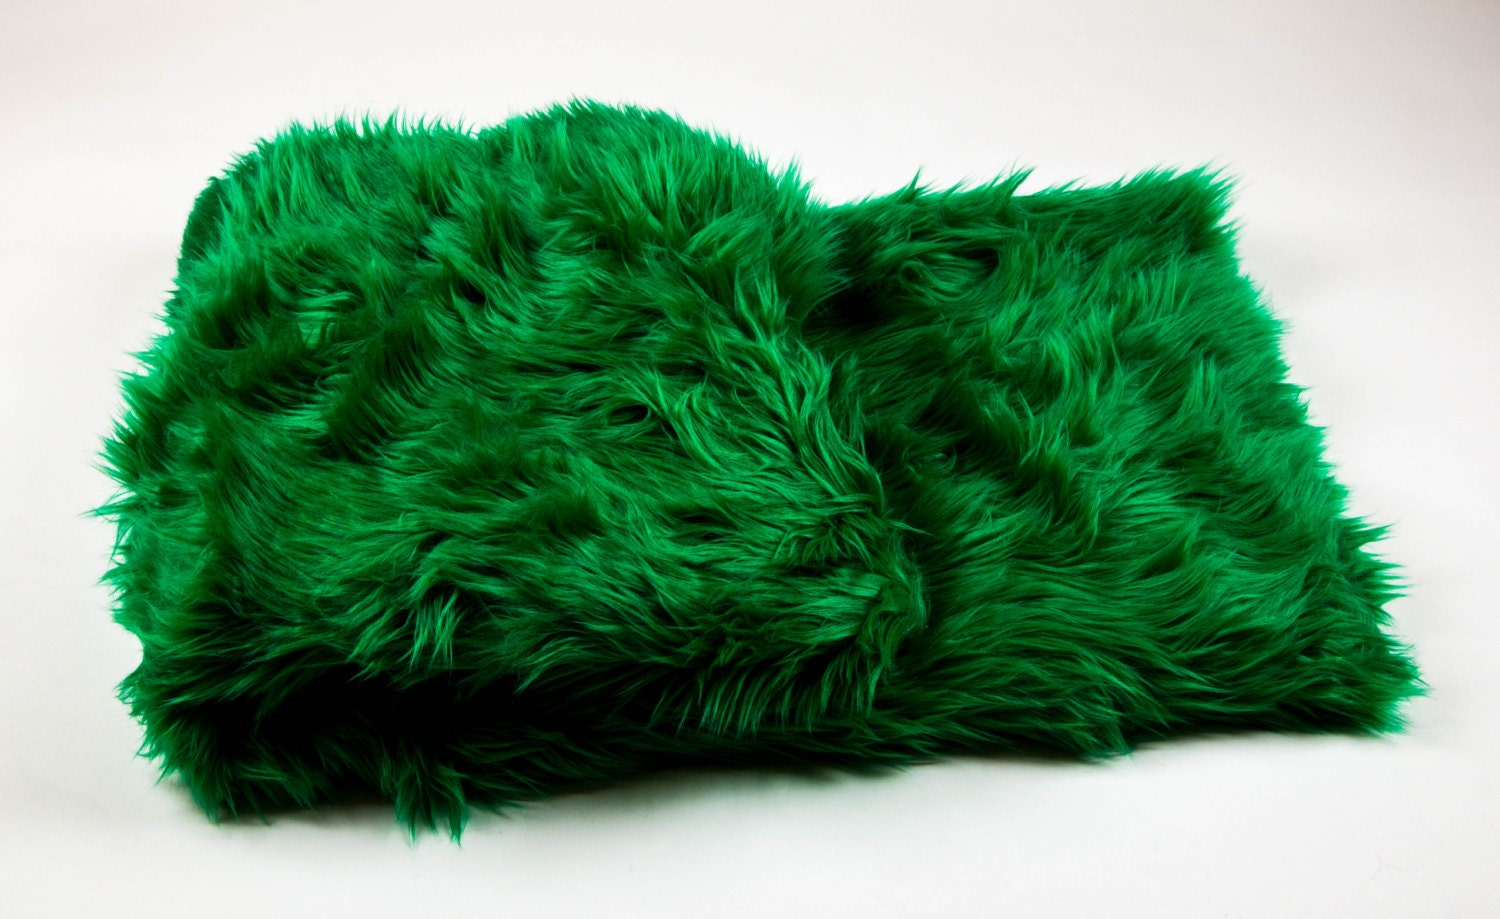 108 X 60 Green Faux Fur Shaggy Throw Blanket Bed